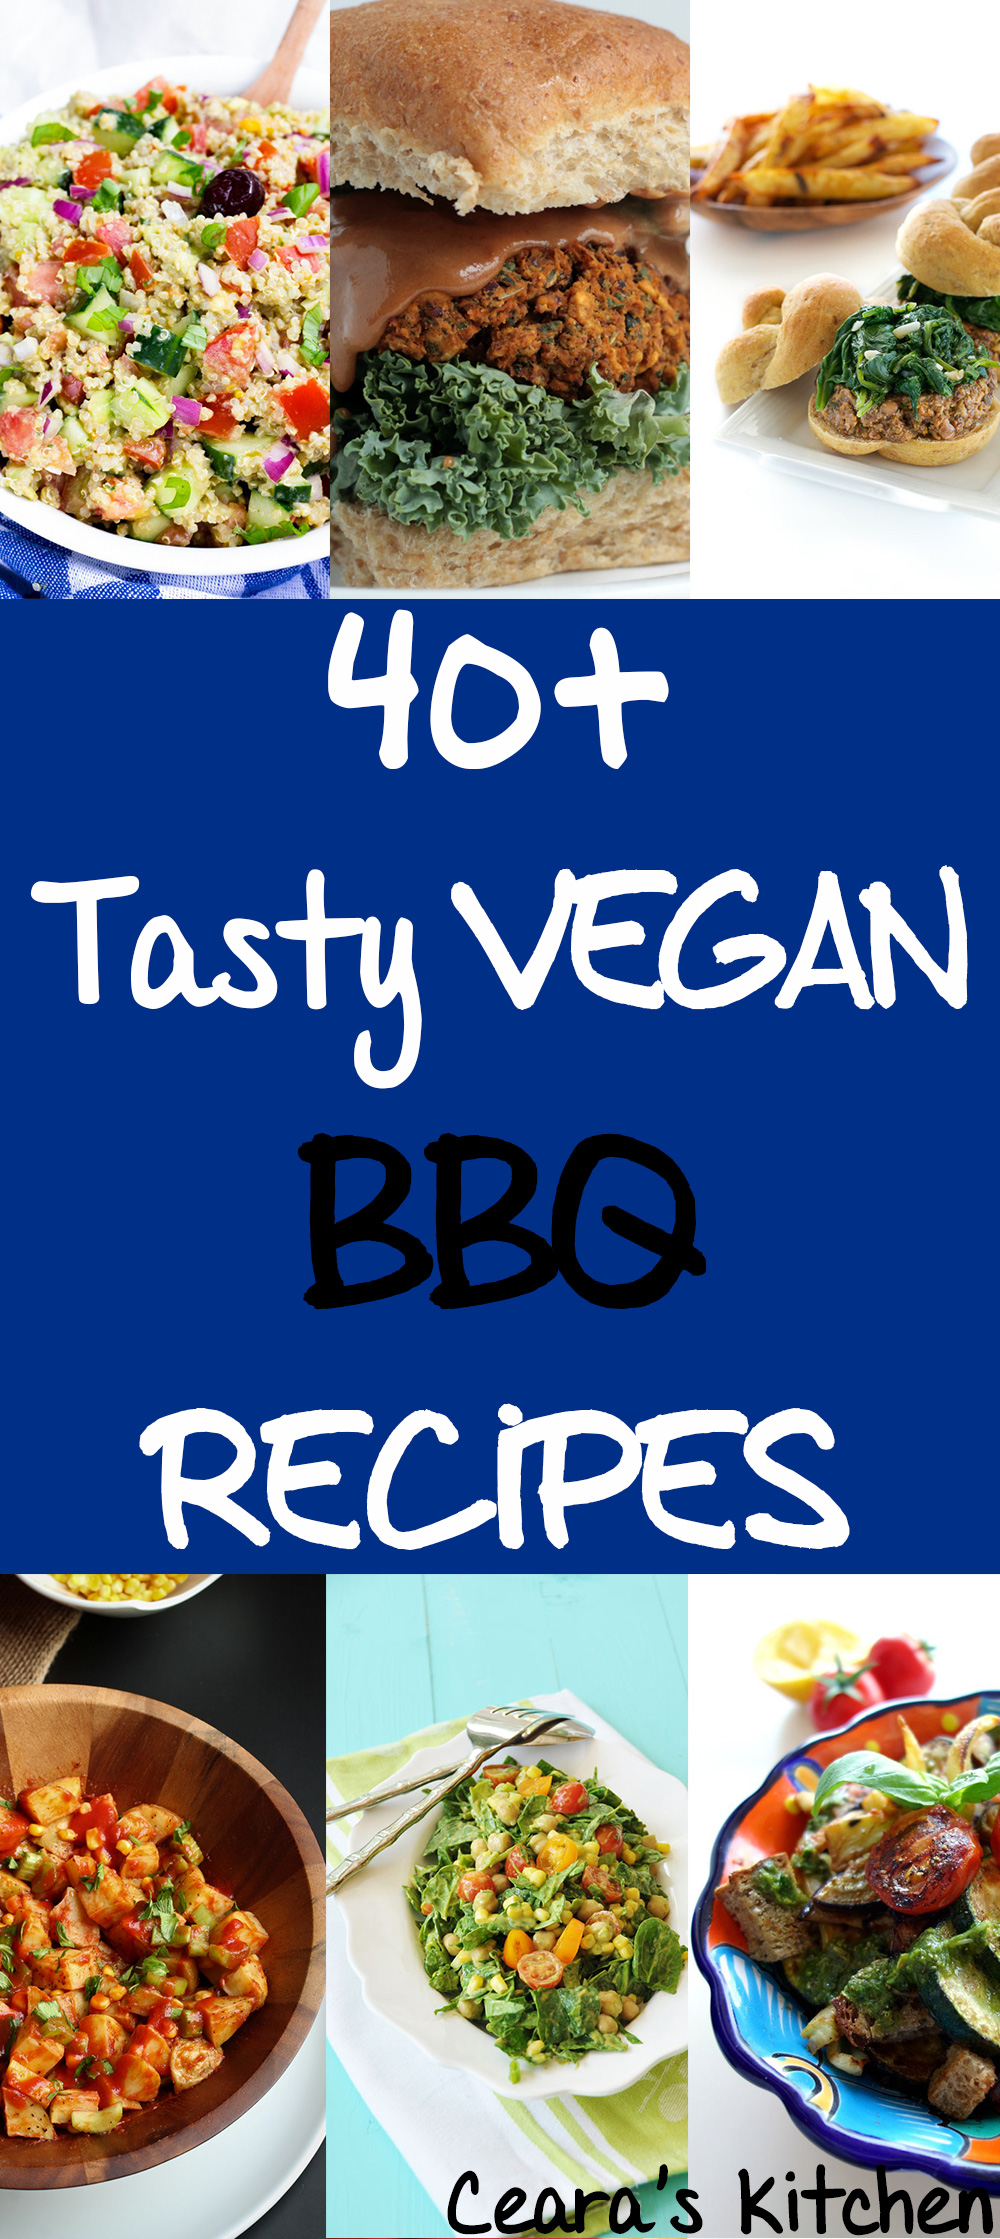 Tasty-Vegan-BBQ-round-UP-2